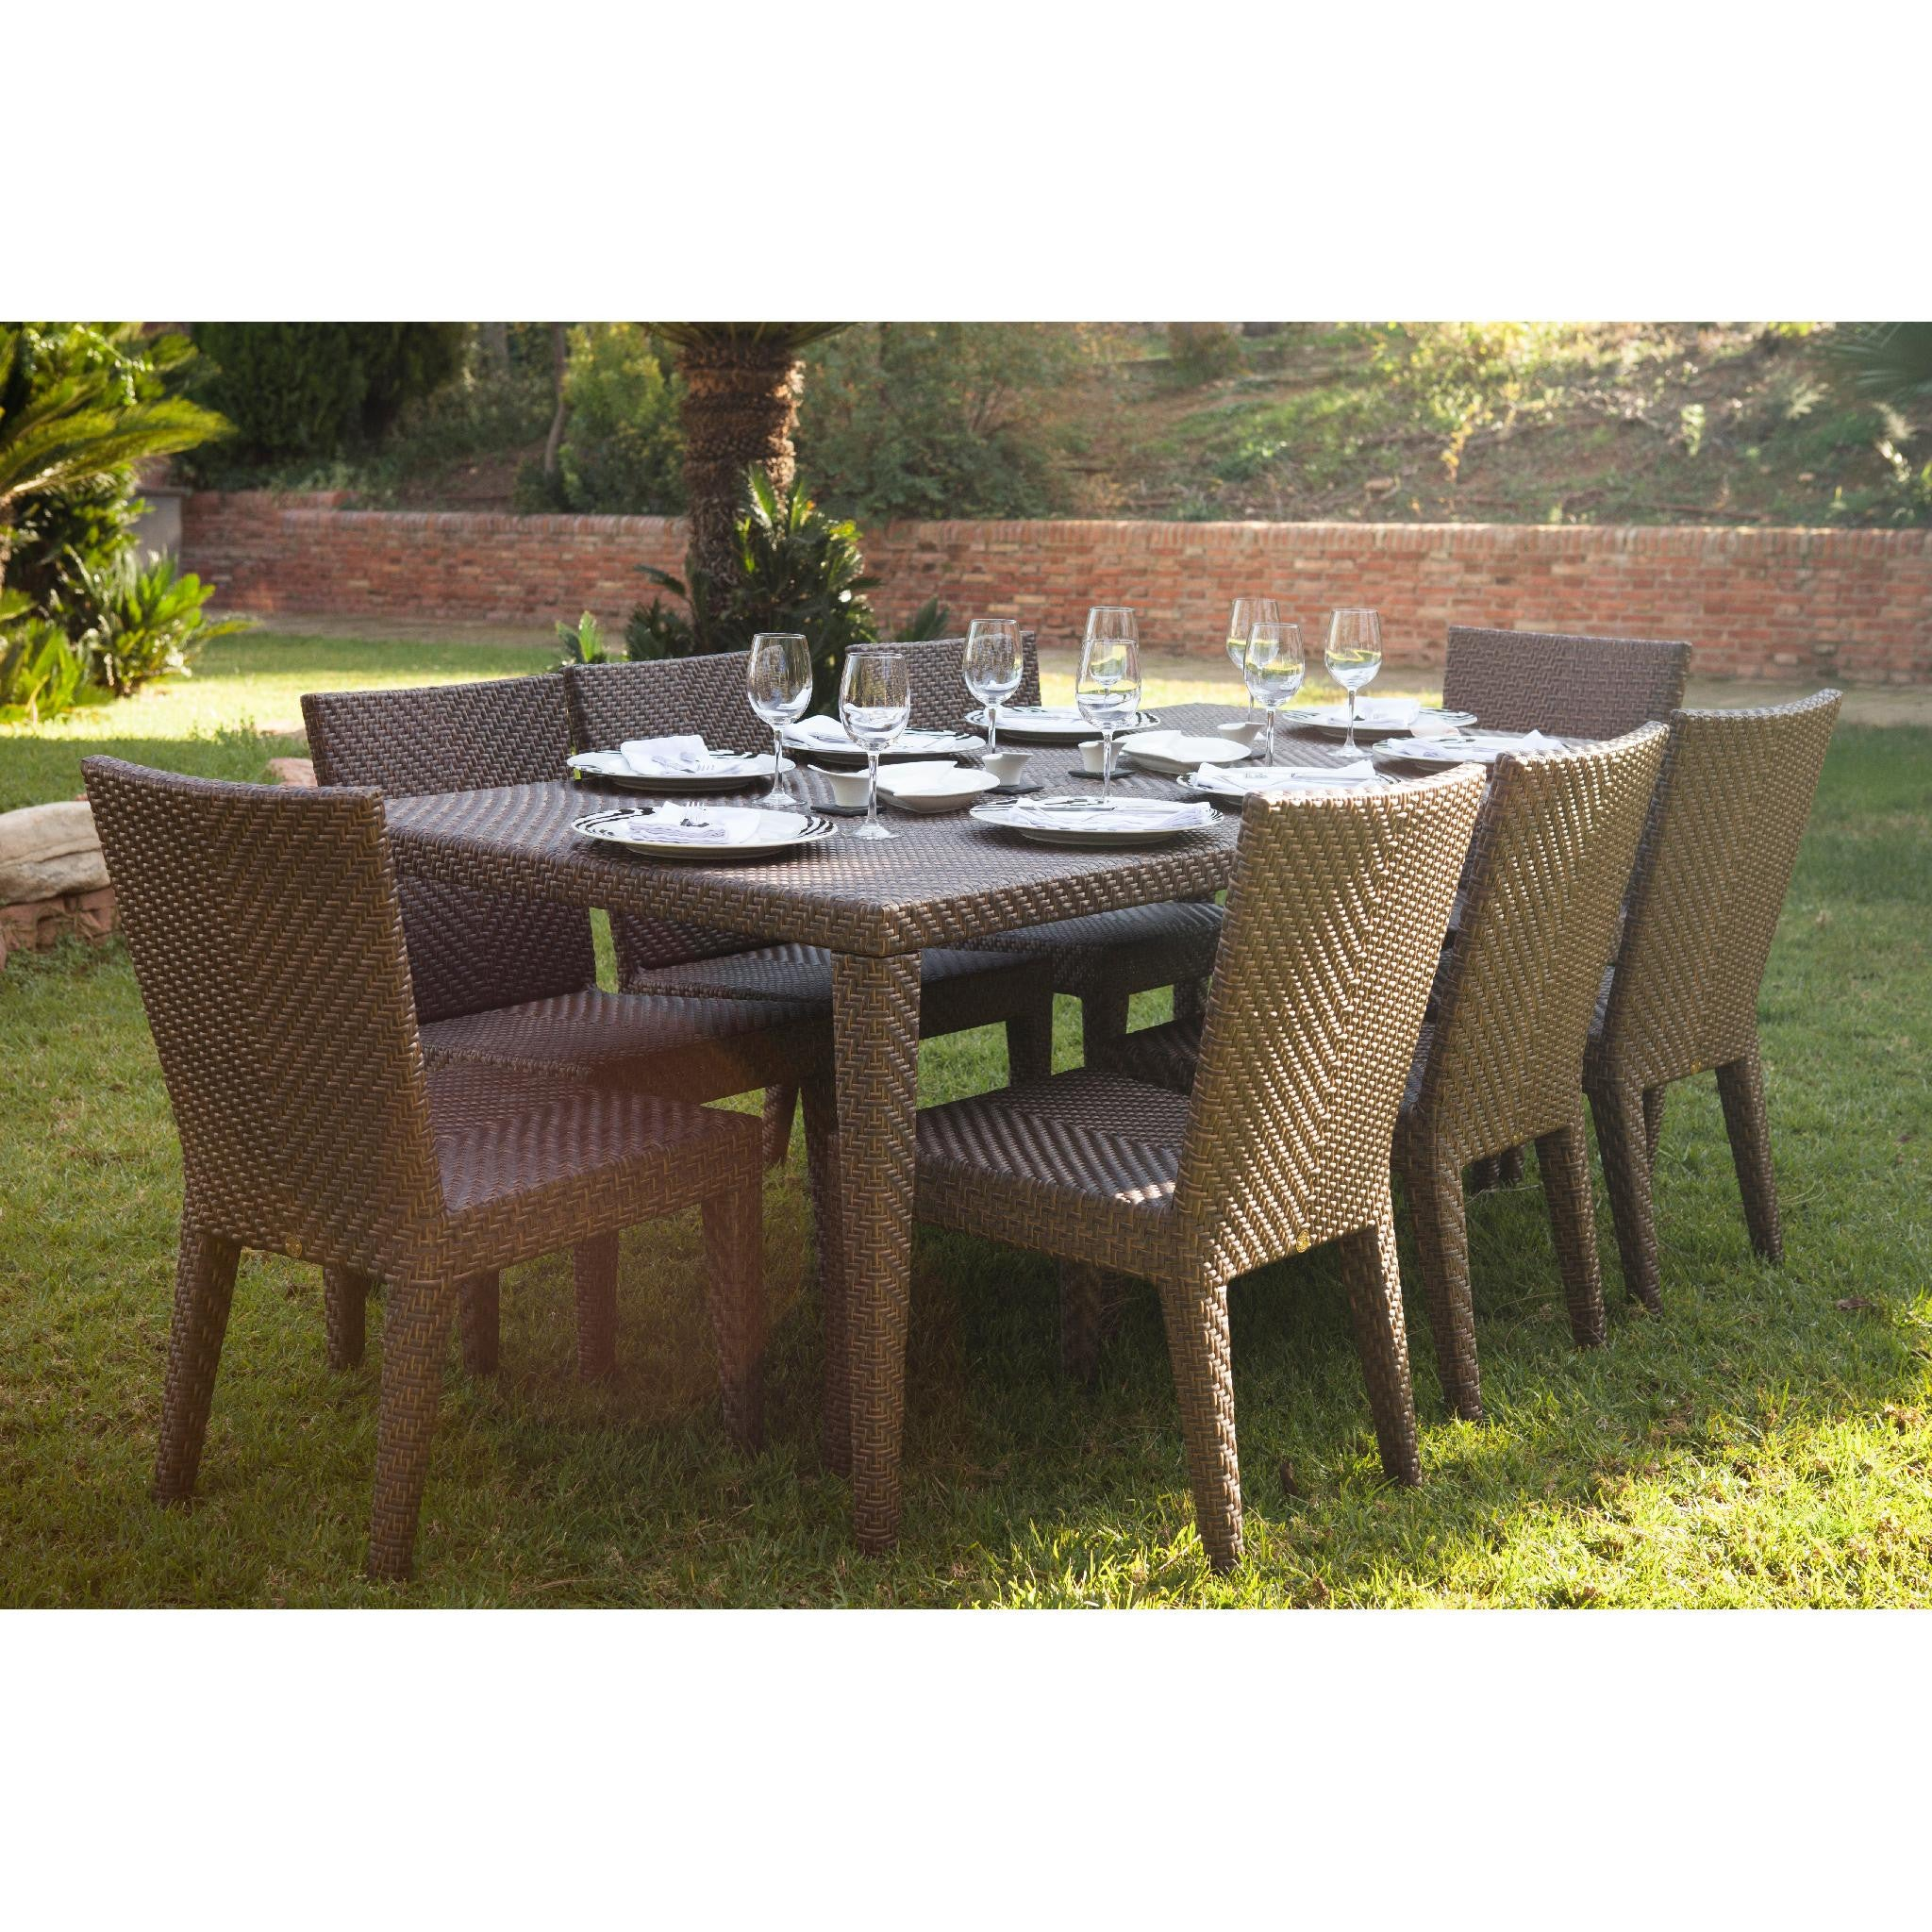 "Dining Table and Seating Sets tagged ""Wicker"" BetterPatio"